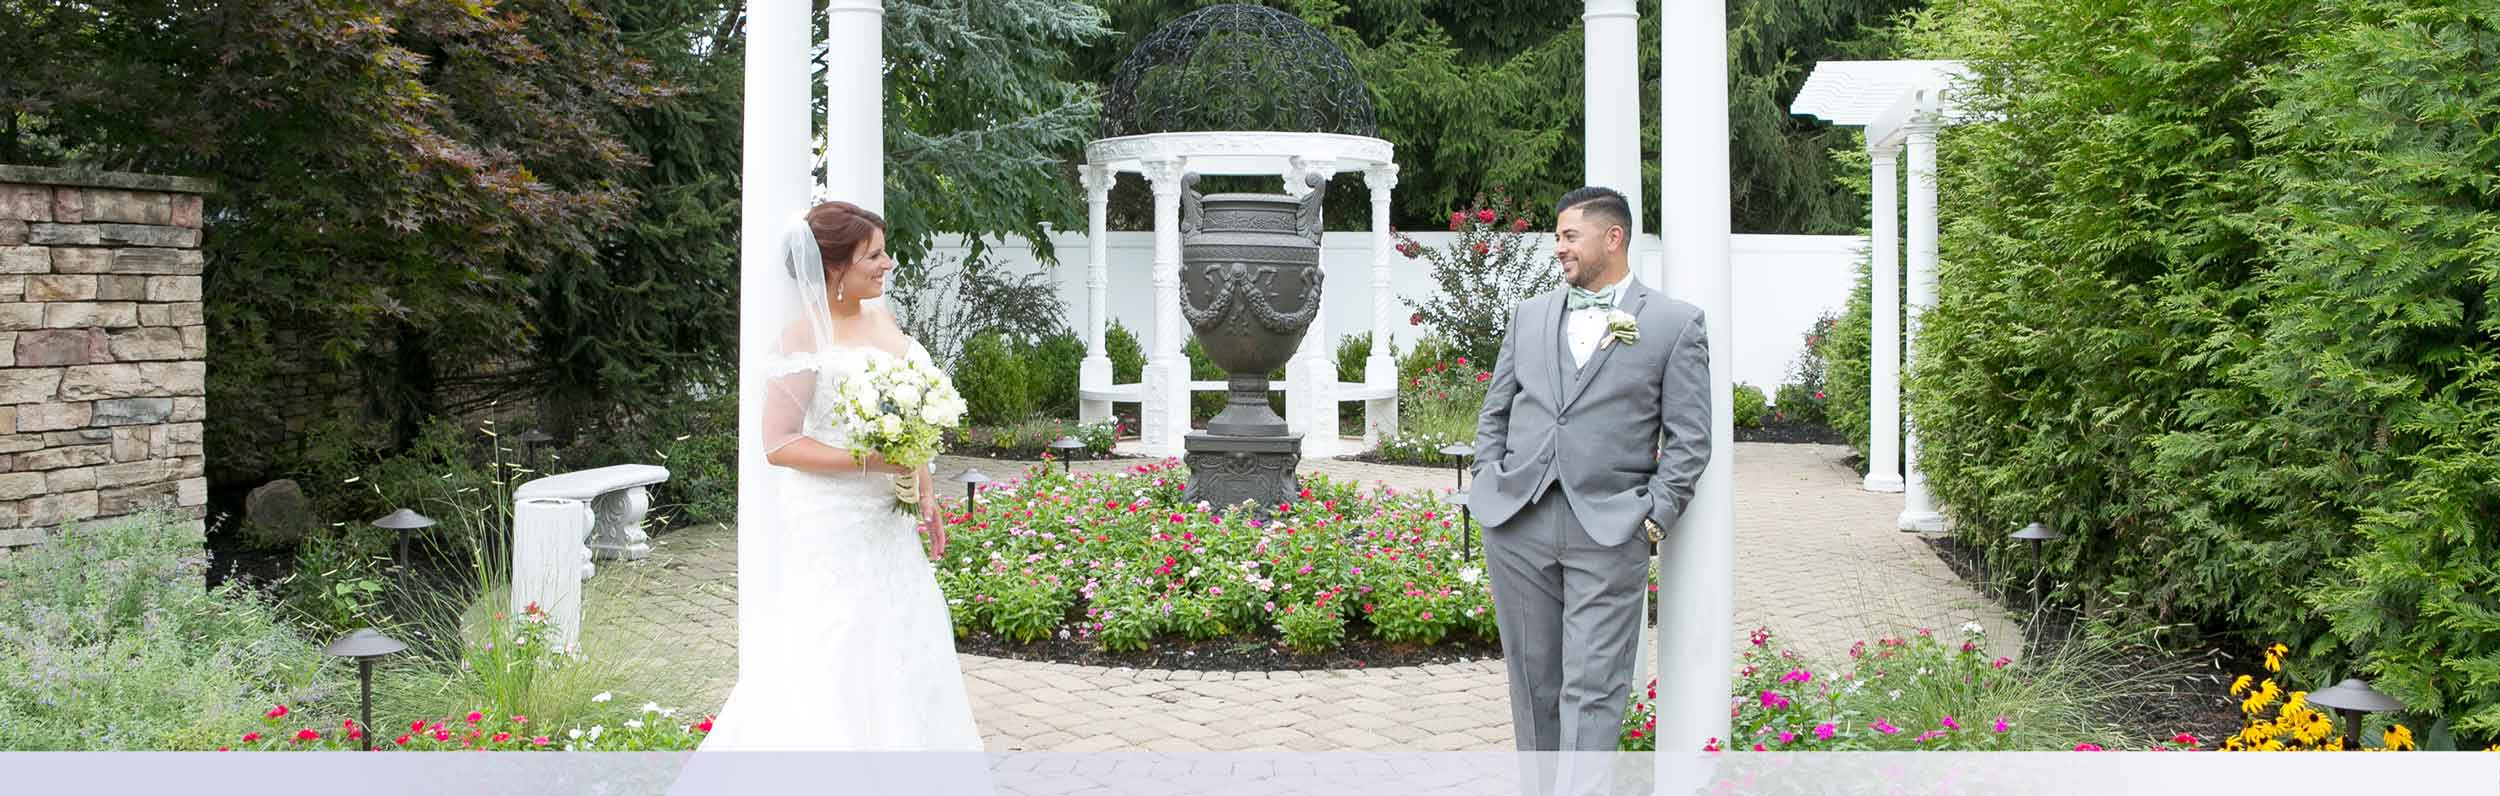 Outdoor Nj Wedding Venue Ceremony Garden